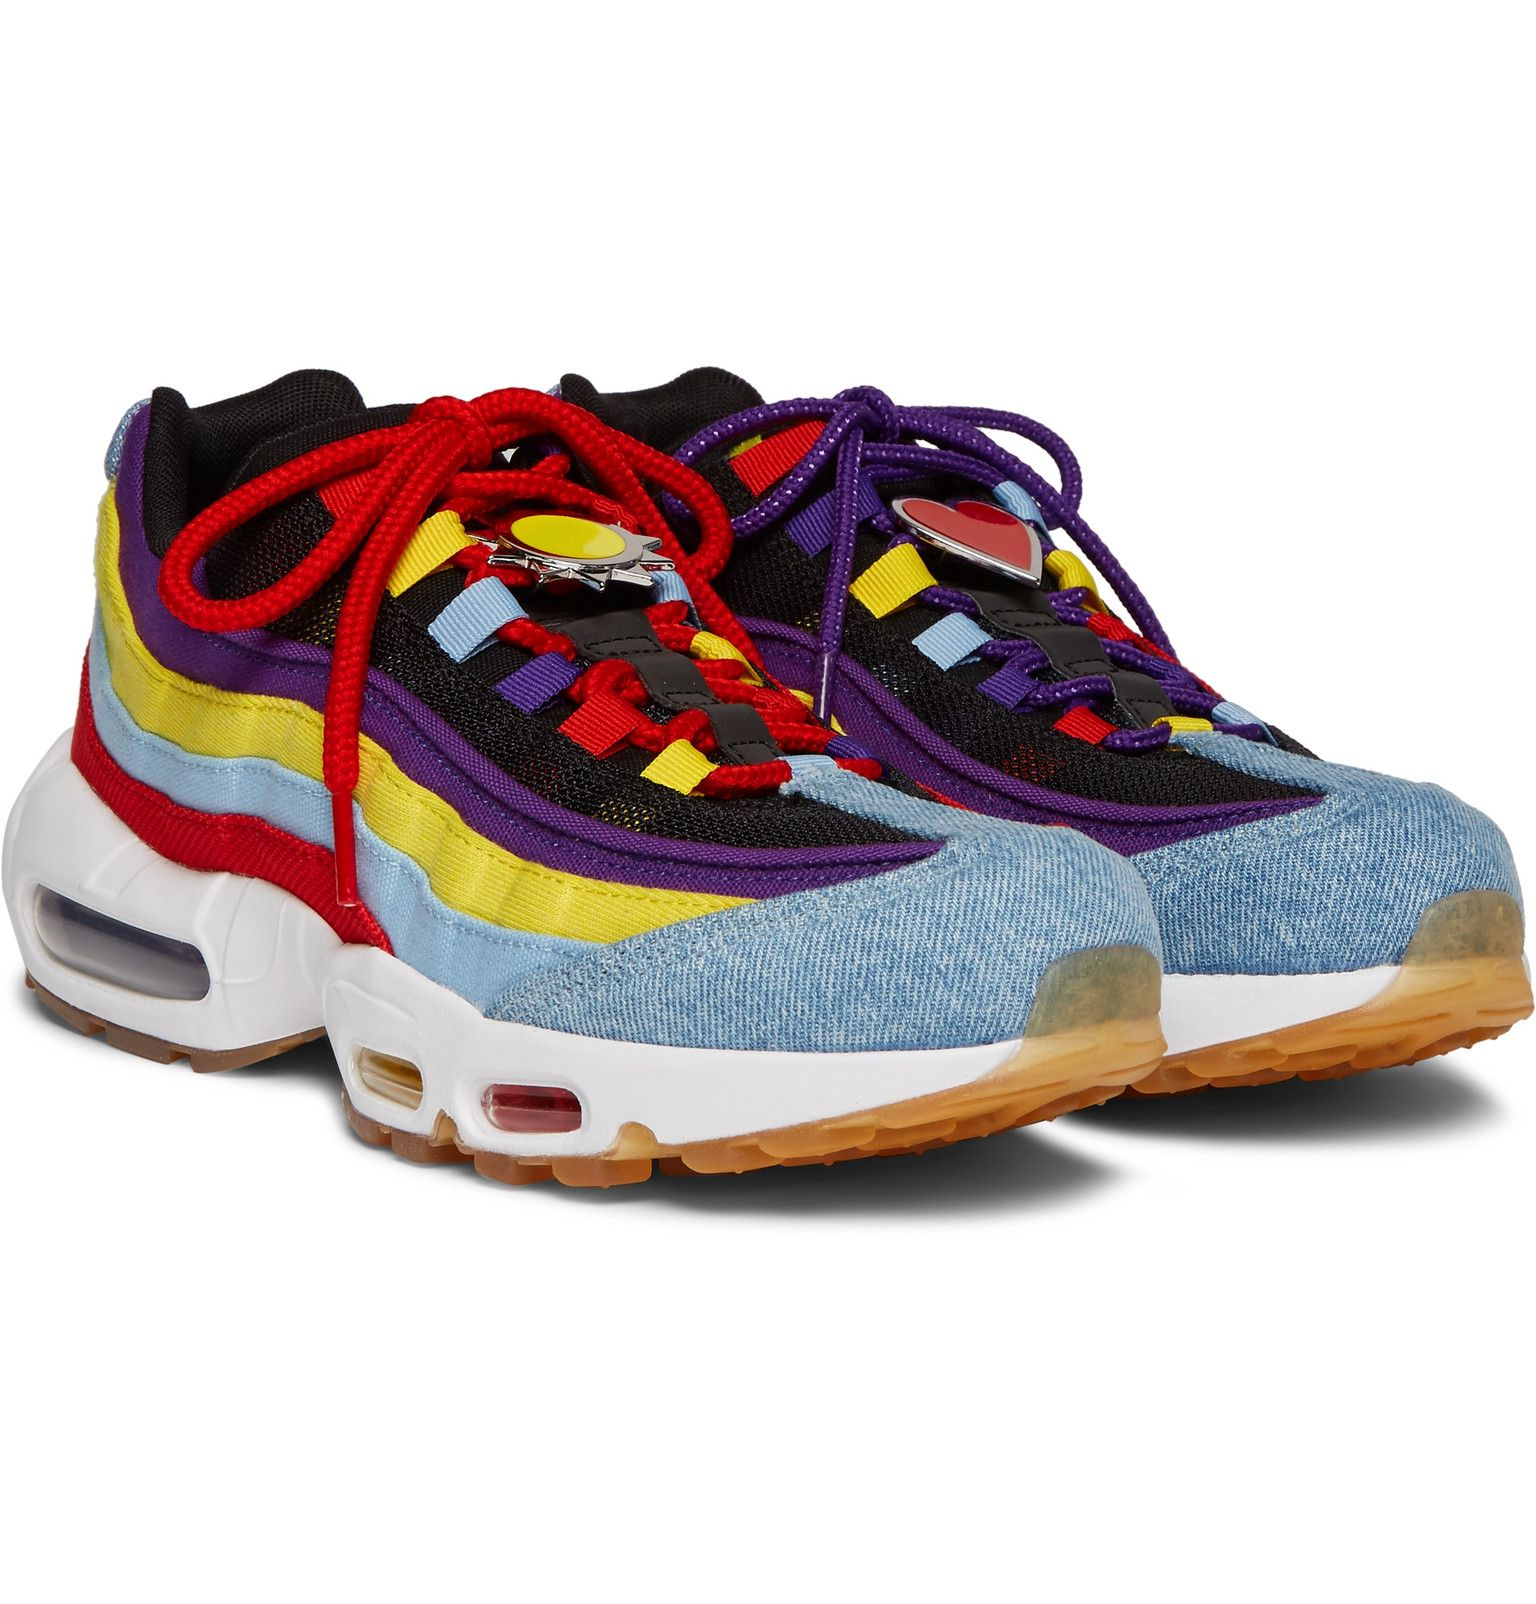 Air Max 95 SP Denim, Canvas and Mesh Sneakers by Nike   Thread.com